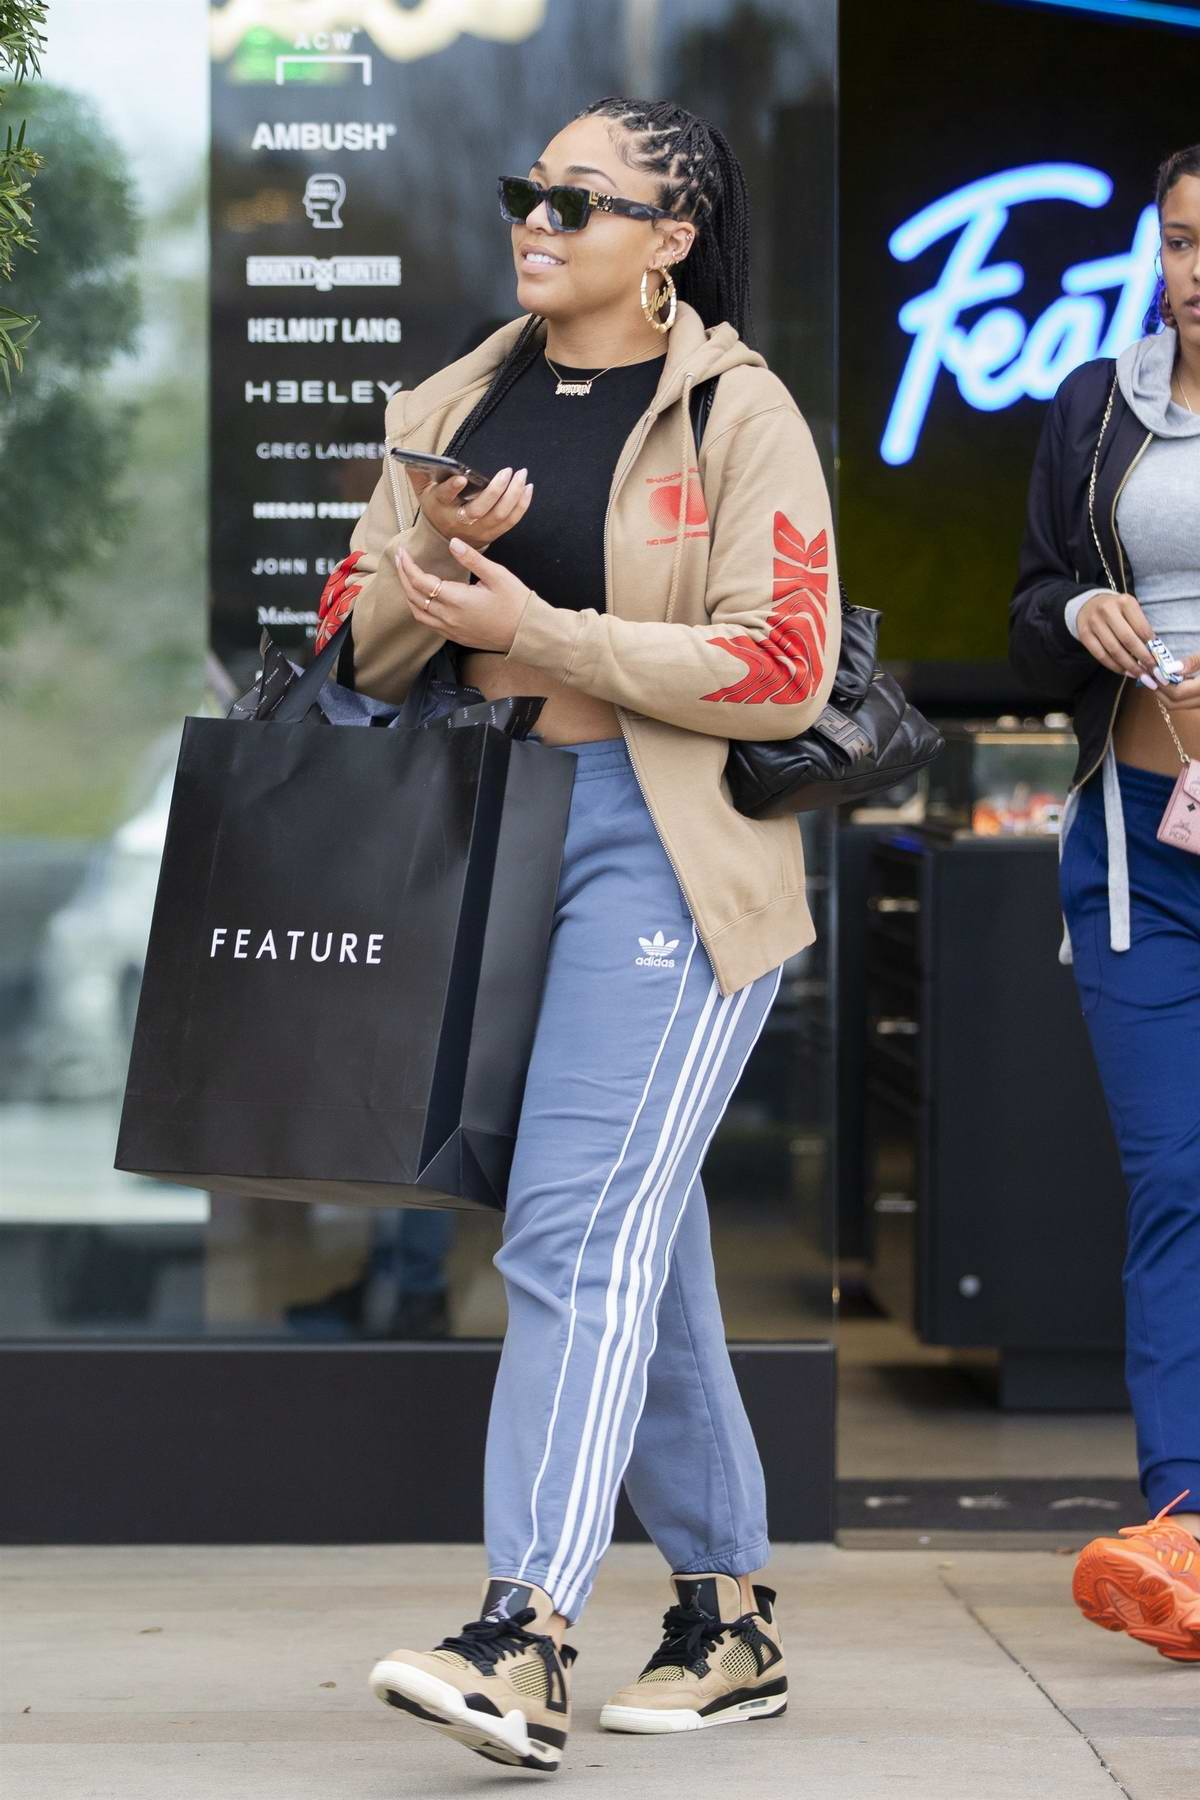 Jordyn Woods steps out for some retail therapy with a friend at the Feature store in Calabasas, California